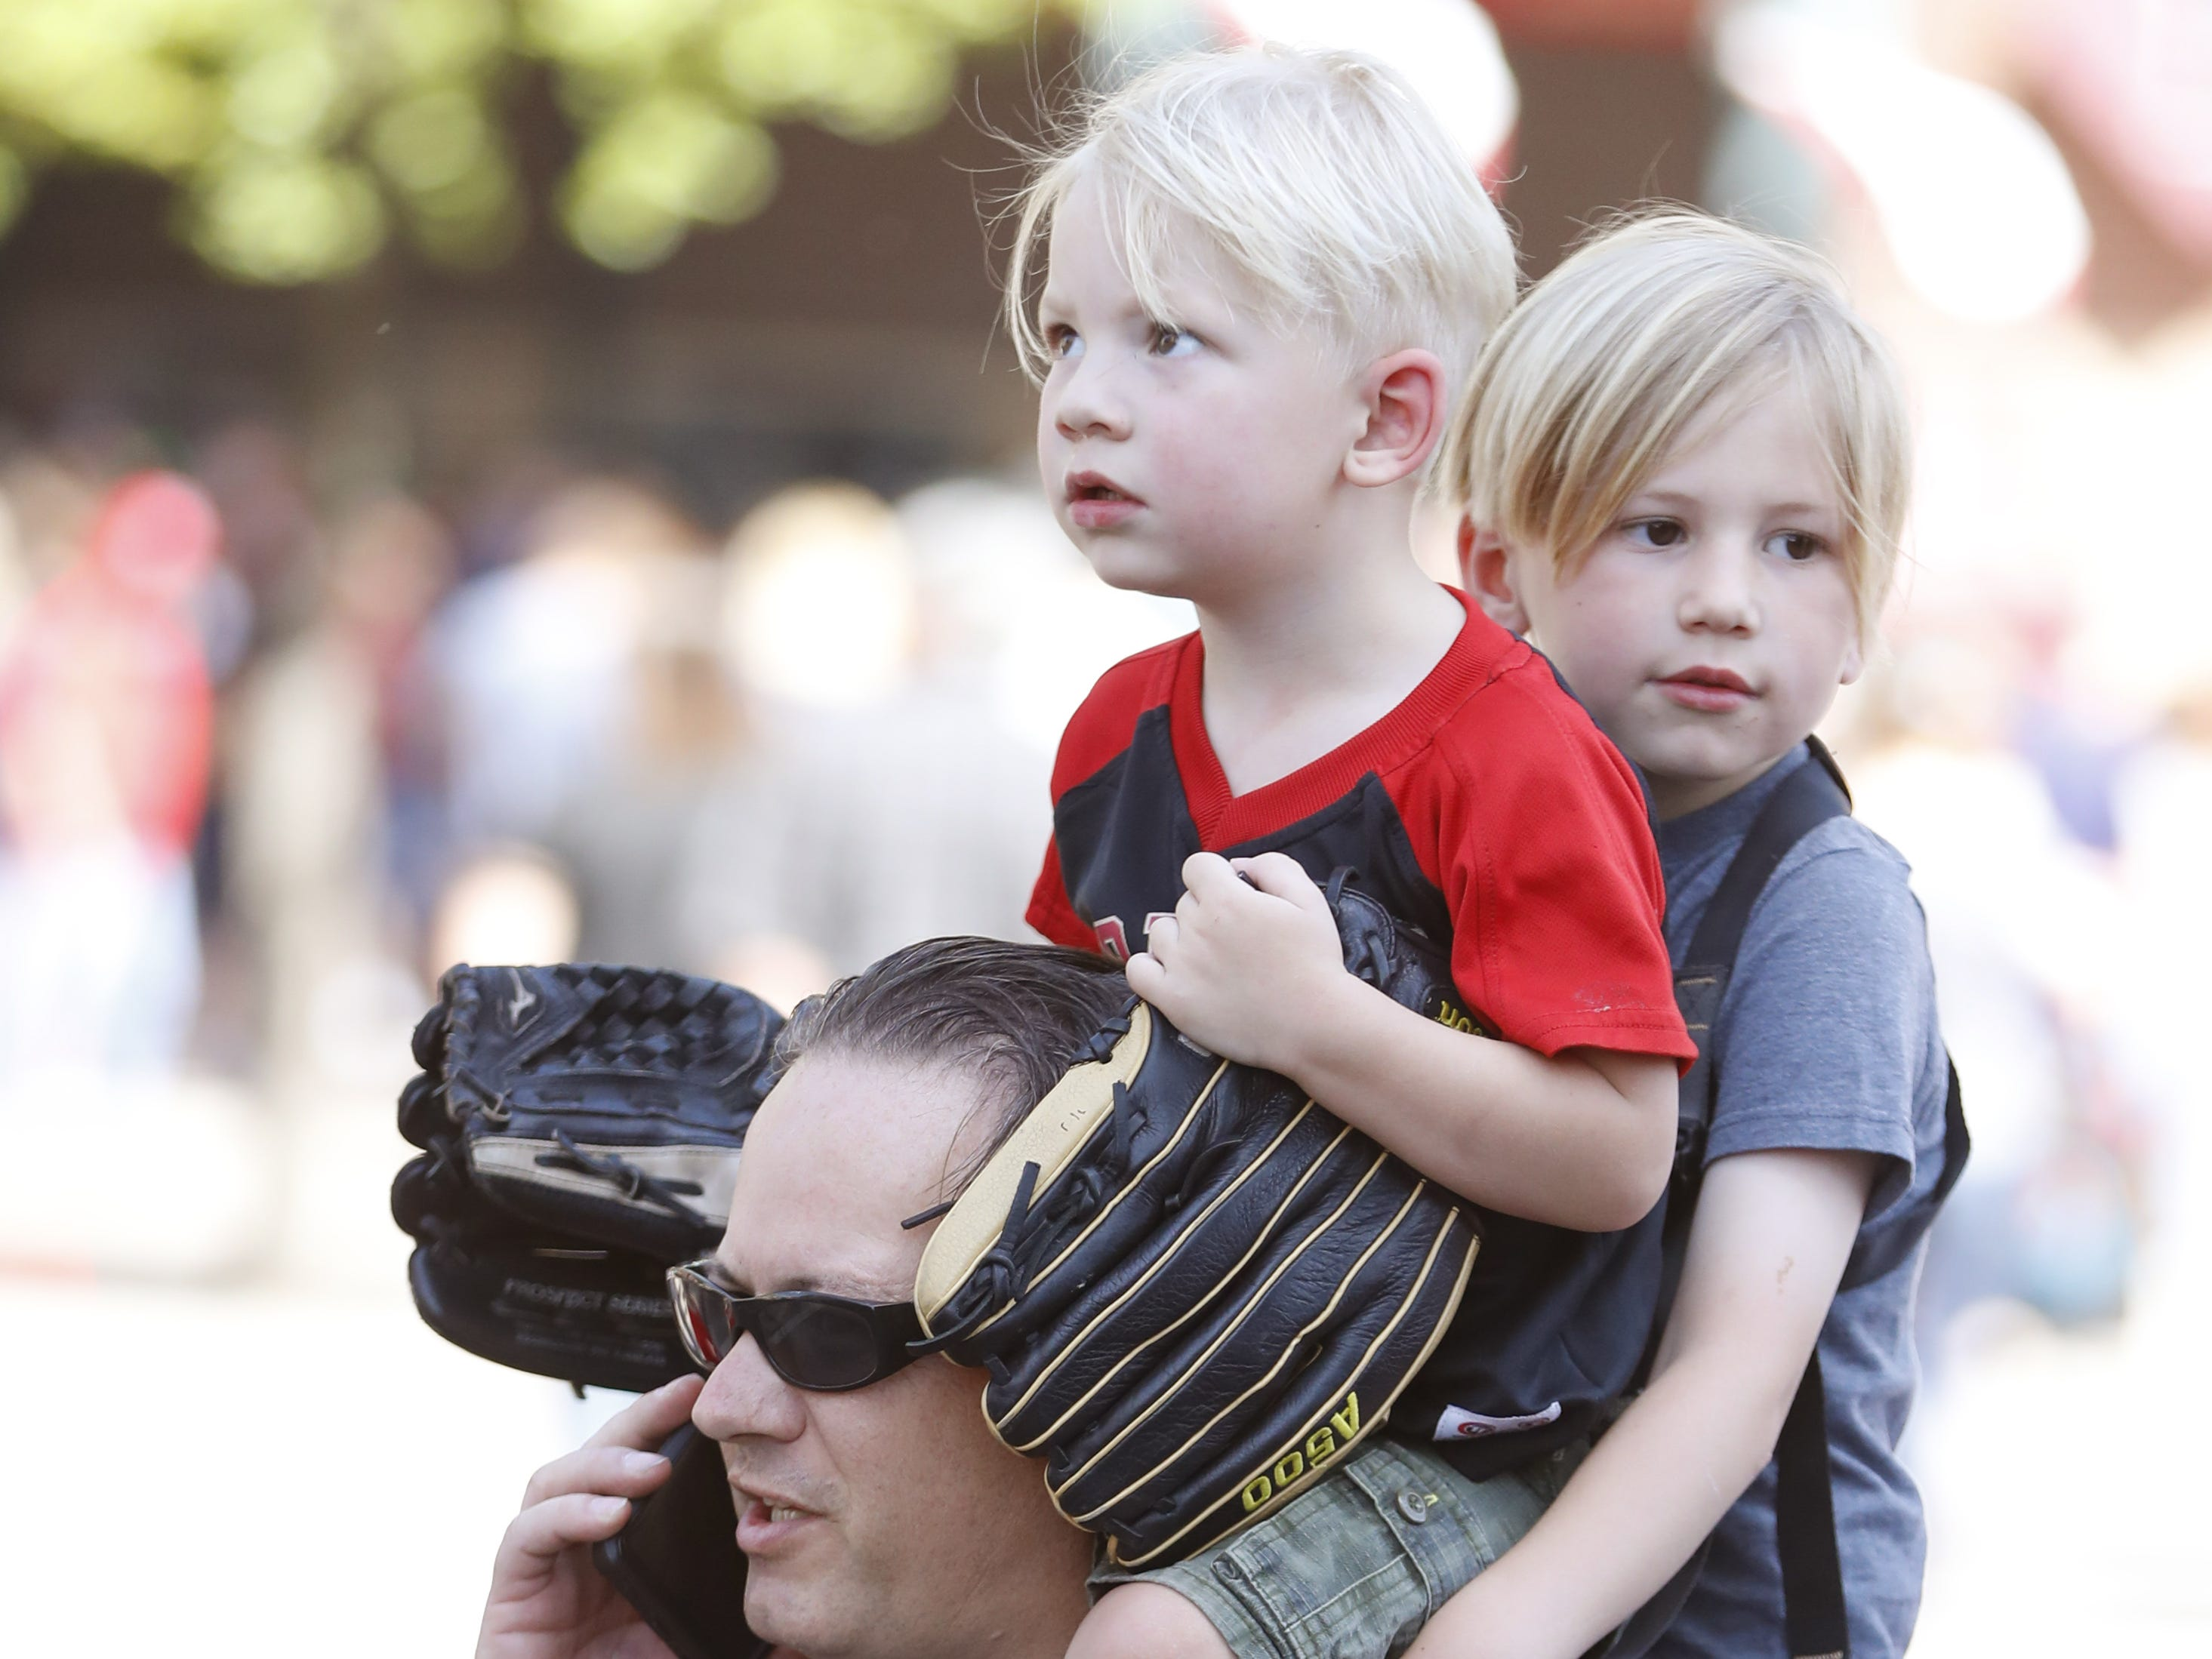 Patrick Flannagan holds his sons Liam (R) and Finn on his back as they make their way outside Chase Field on the Opening Day for the Diamondbacks in Phoenix, Ariz. on April 5, 2019.